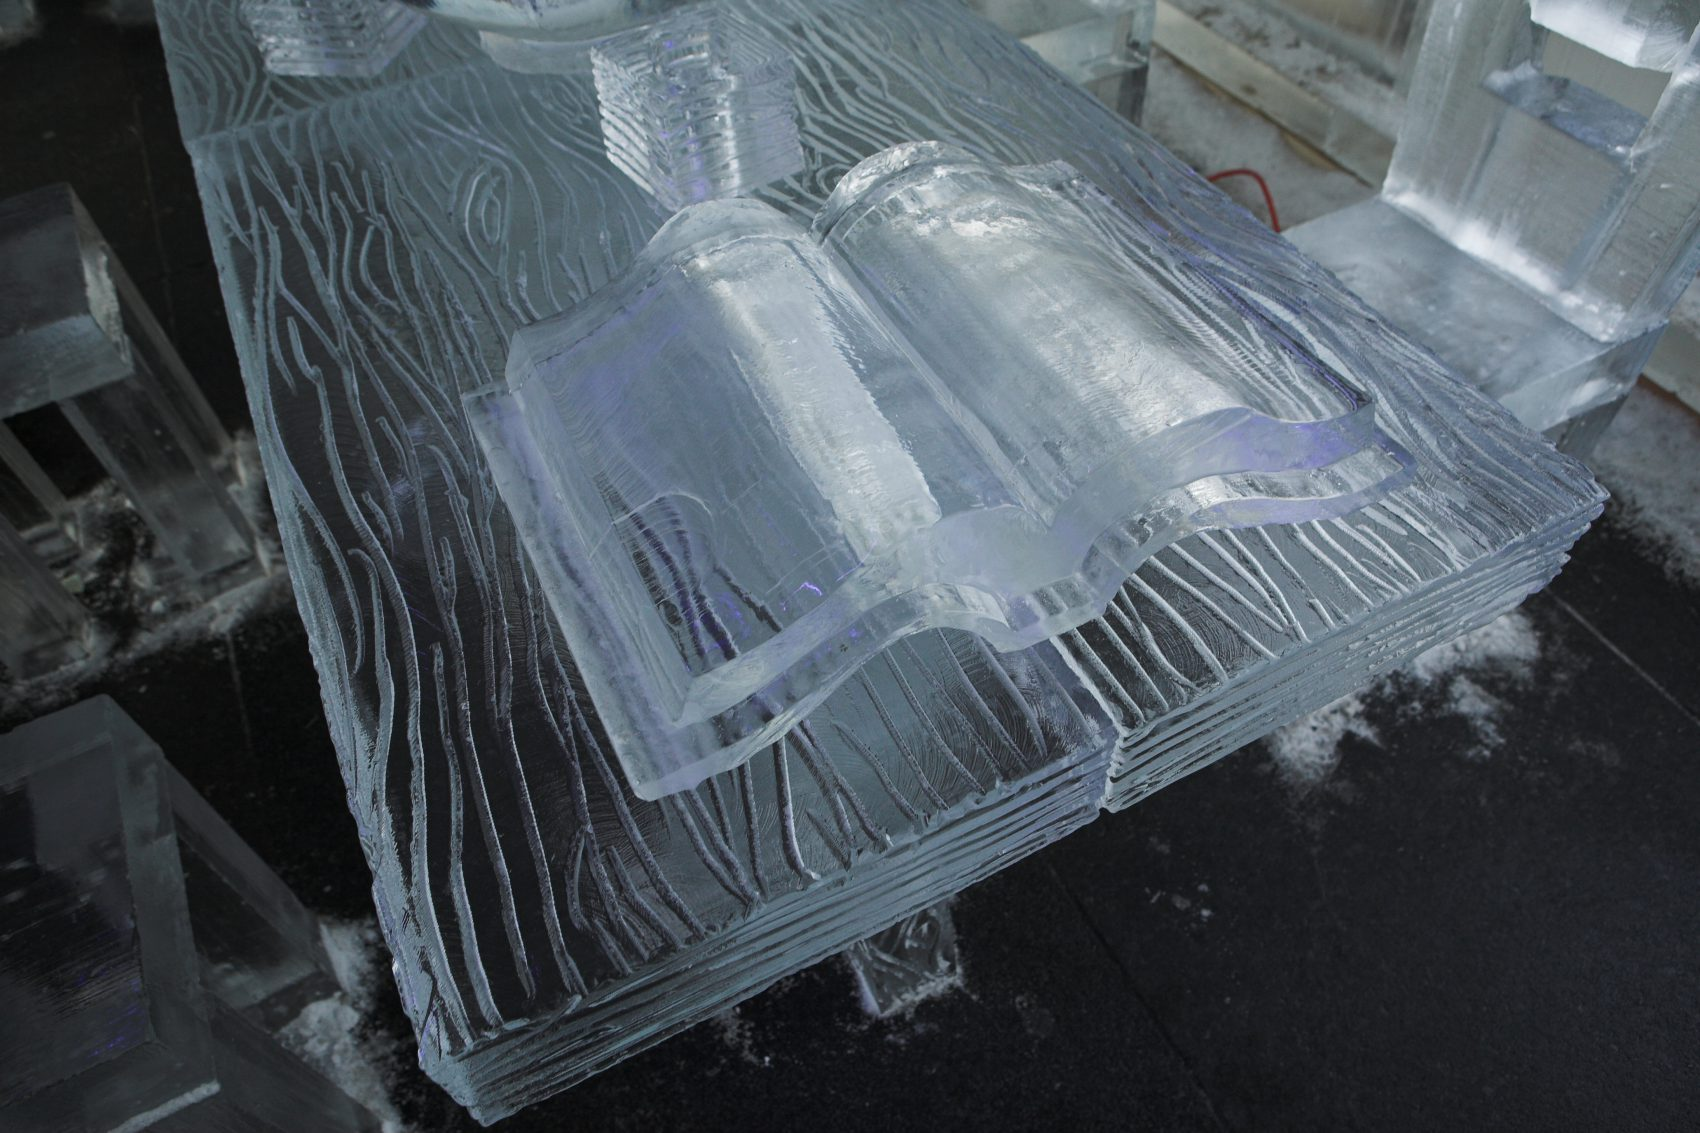 Book made out of ice